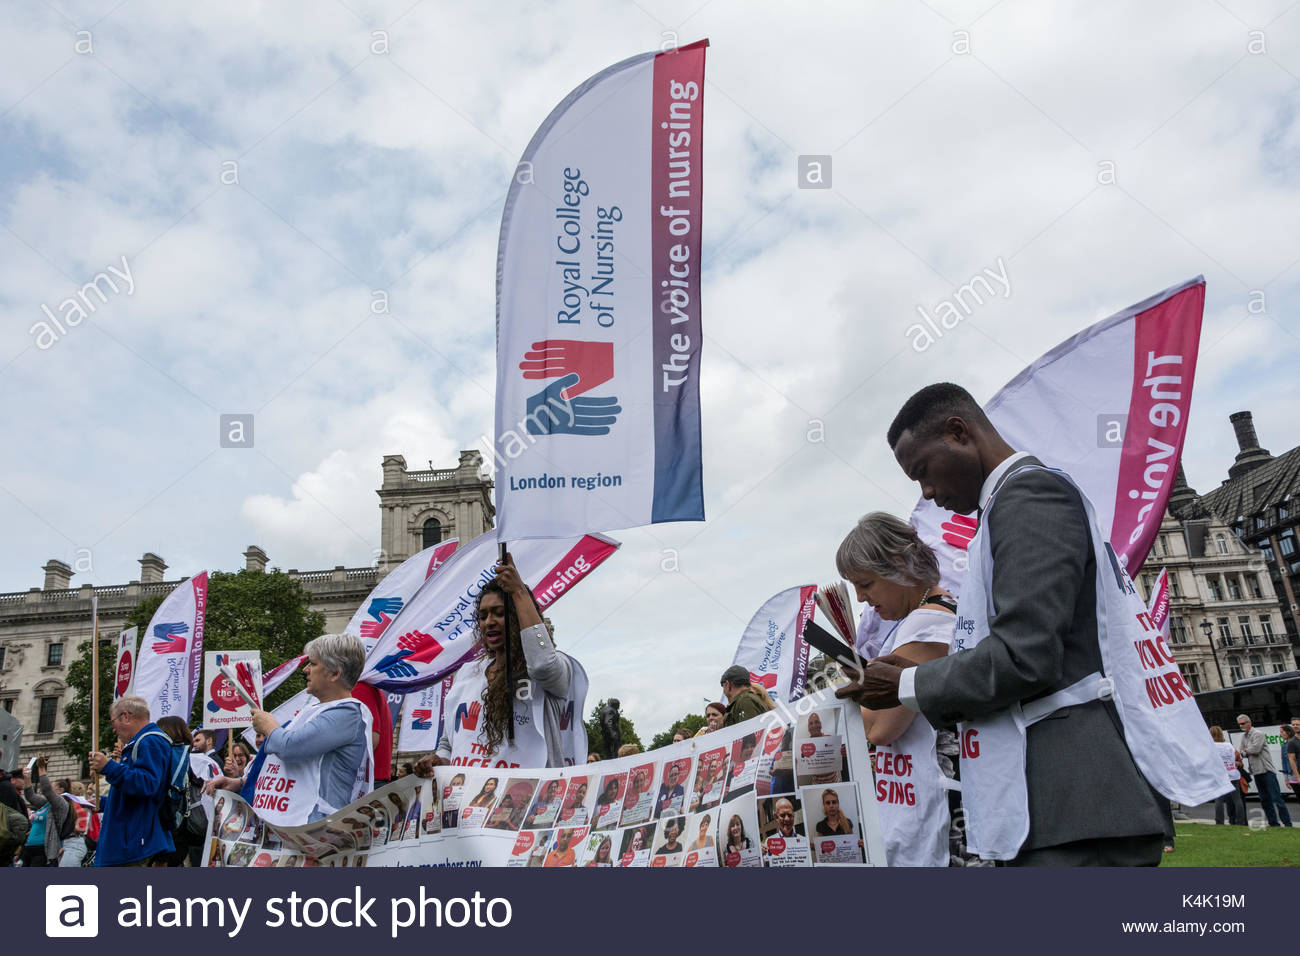 London, UK. , . Royal College of Nursing Smash the Cap demonstration in Parliament Square, London, England, UK. - Stock Image